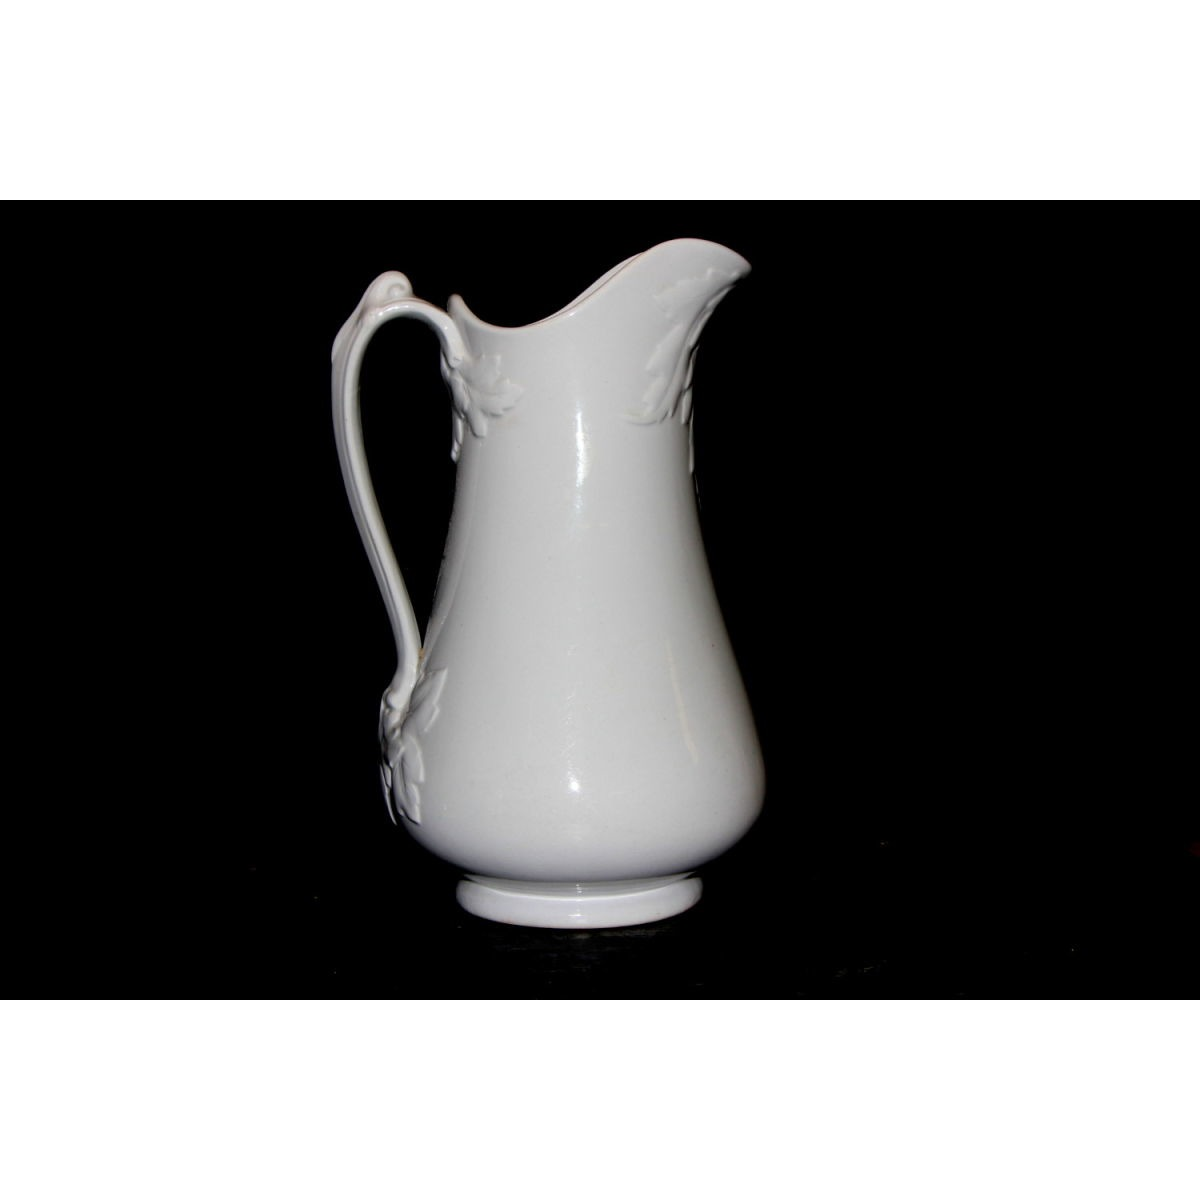 Unusual Tall Slender Skinny Ironstone Ewer with Exaggerated Leaf